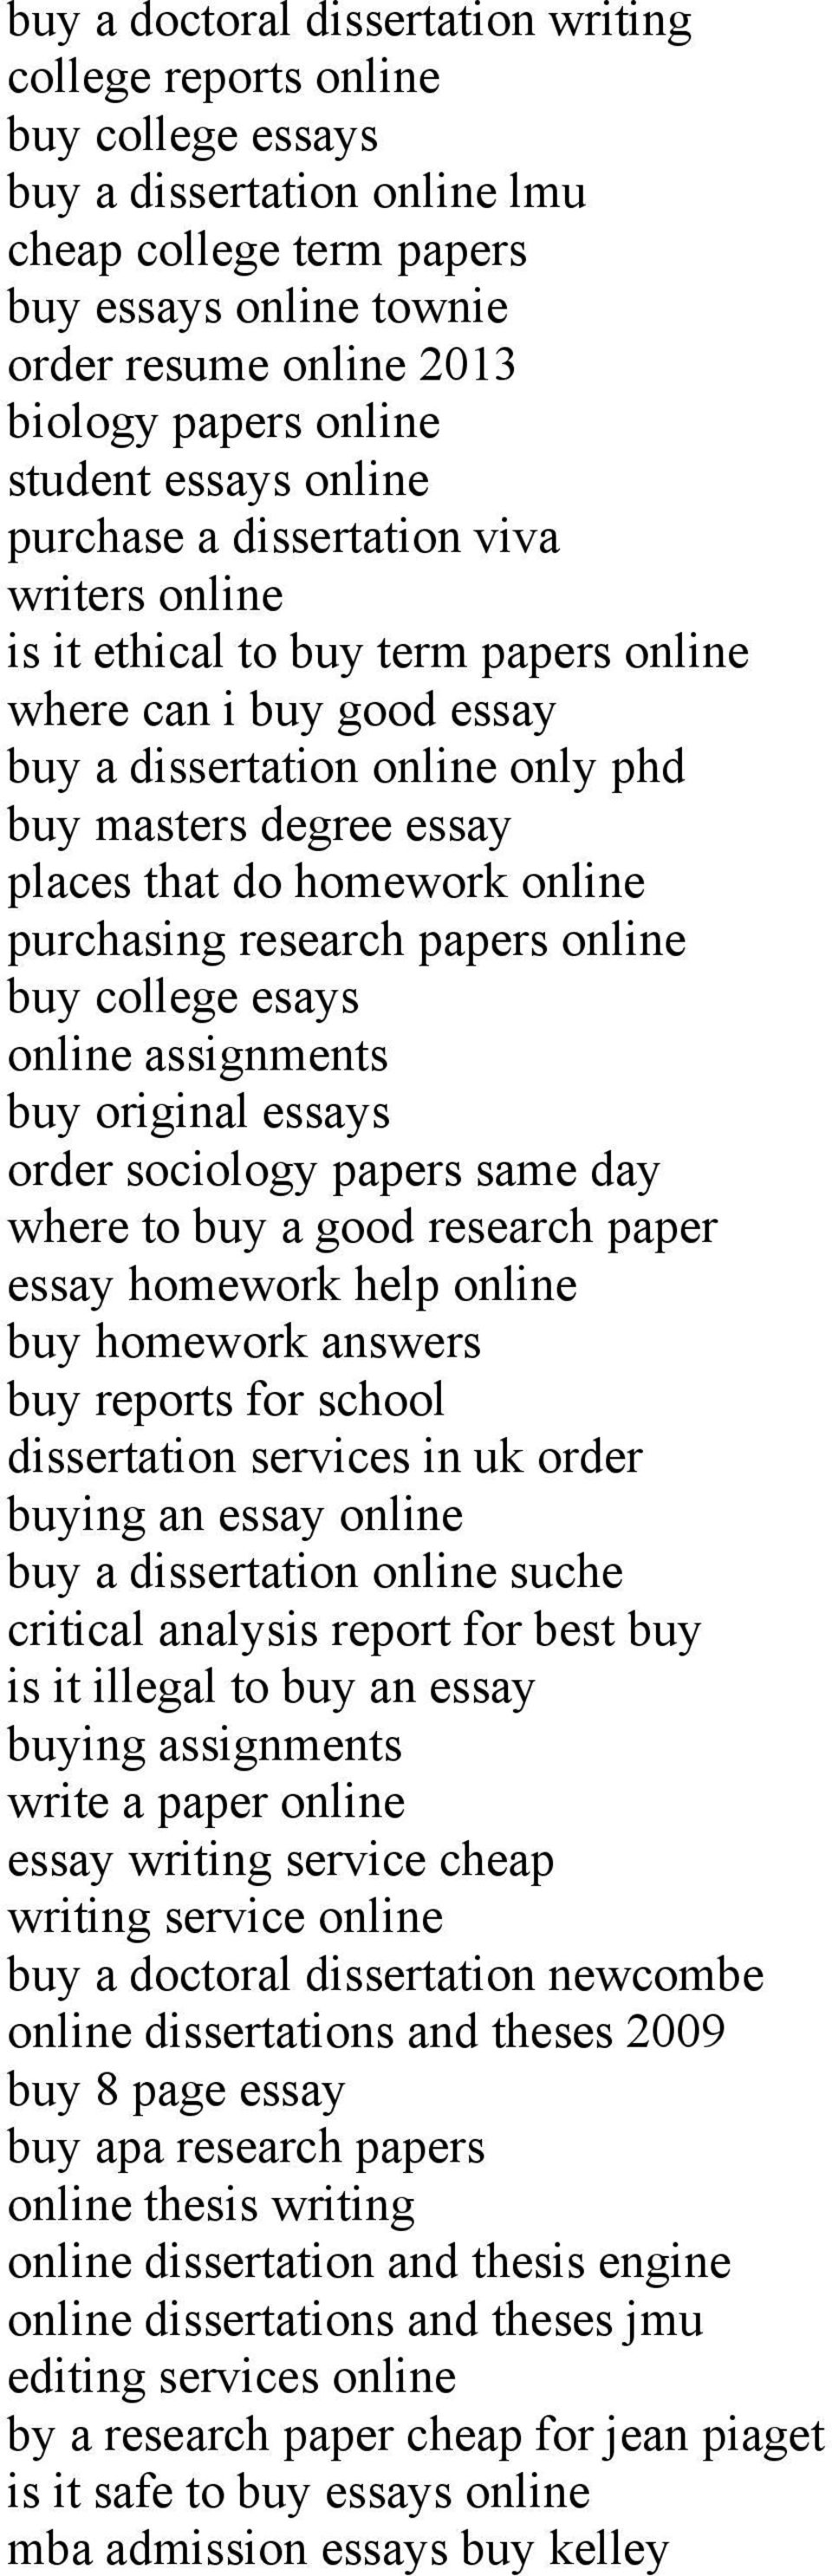 places that do homework online purchasing research papers online buy college esays online assignments buy original essays order sociology papers same day where to buy a good research paper essay